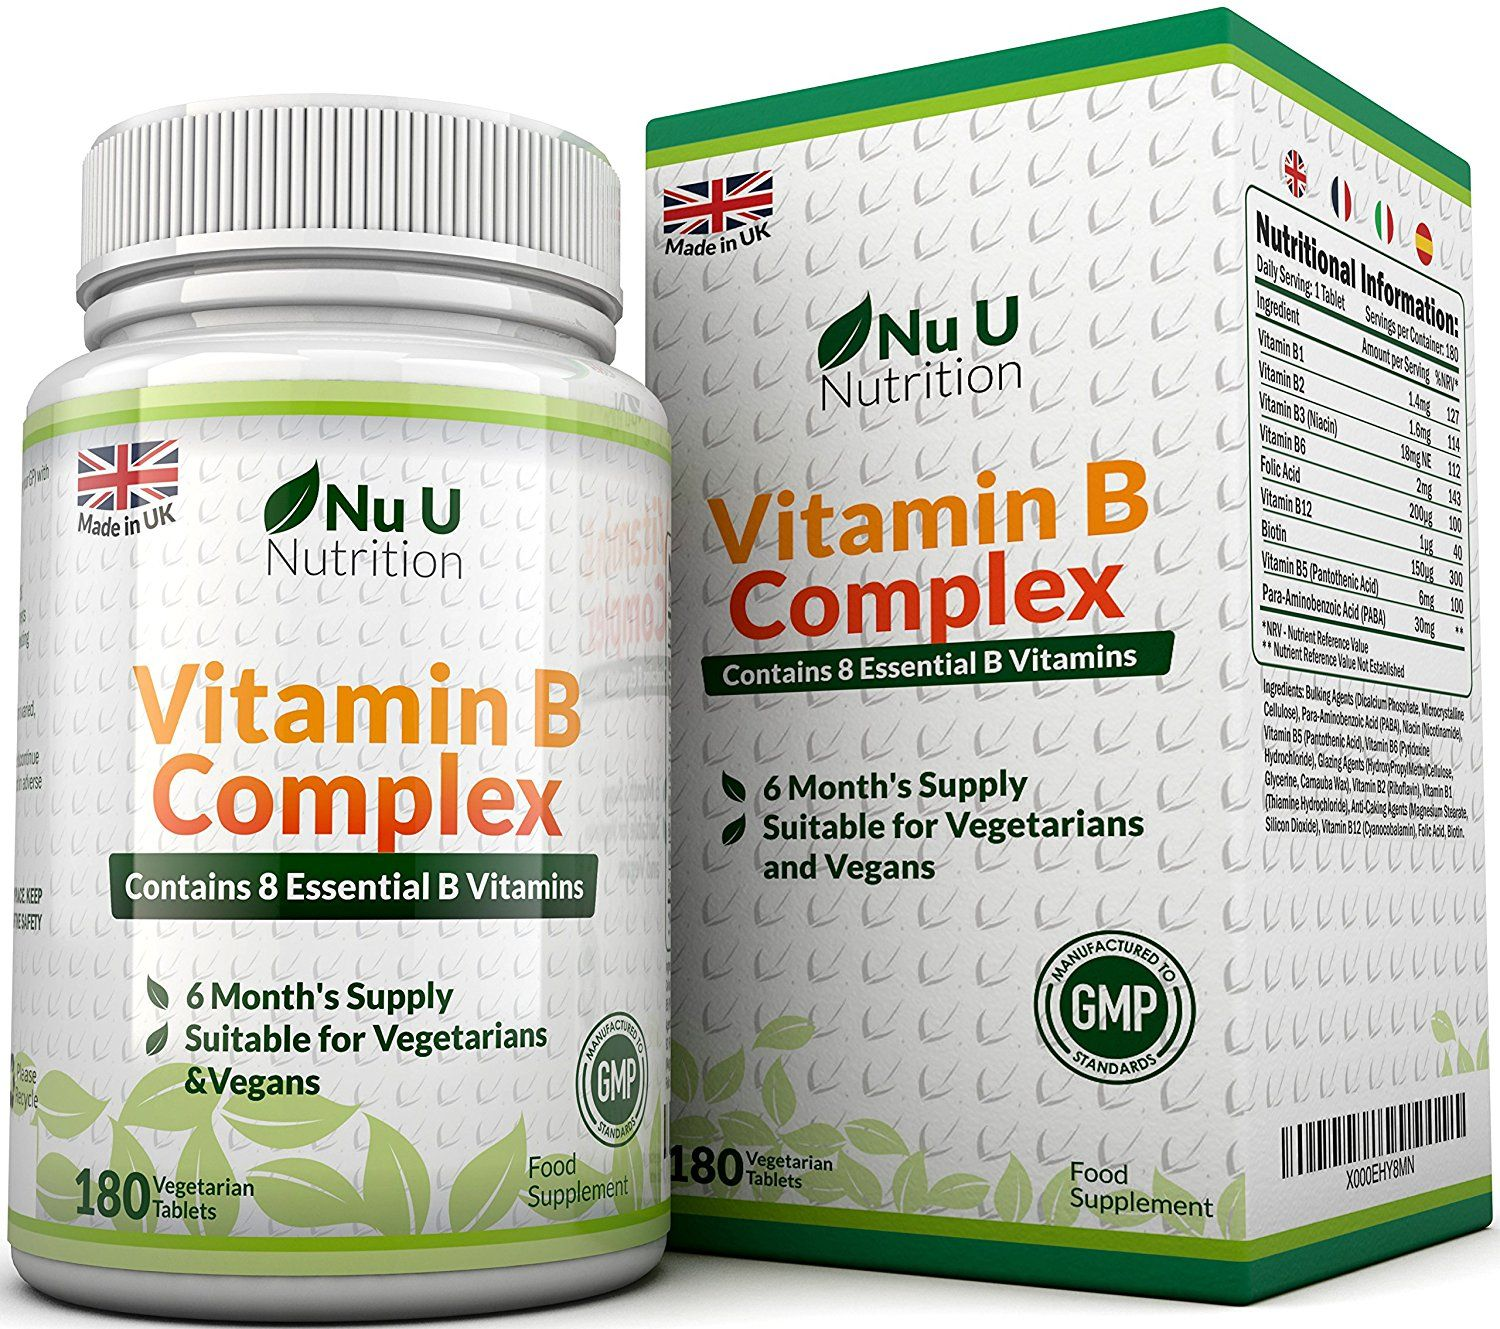 Vitamin B Complex 180 Tablets 6 Month Supply Contains All Eight B Vitamins In 1 Tablet Vitamins B1 B2 B3 B5 B6 B Vitamins Vitamin B Vitamin B Complex